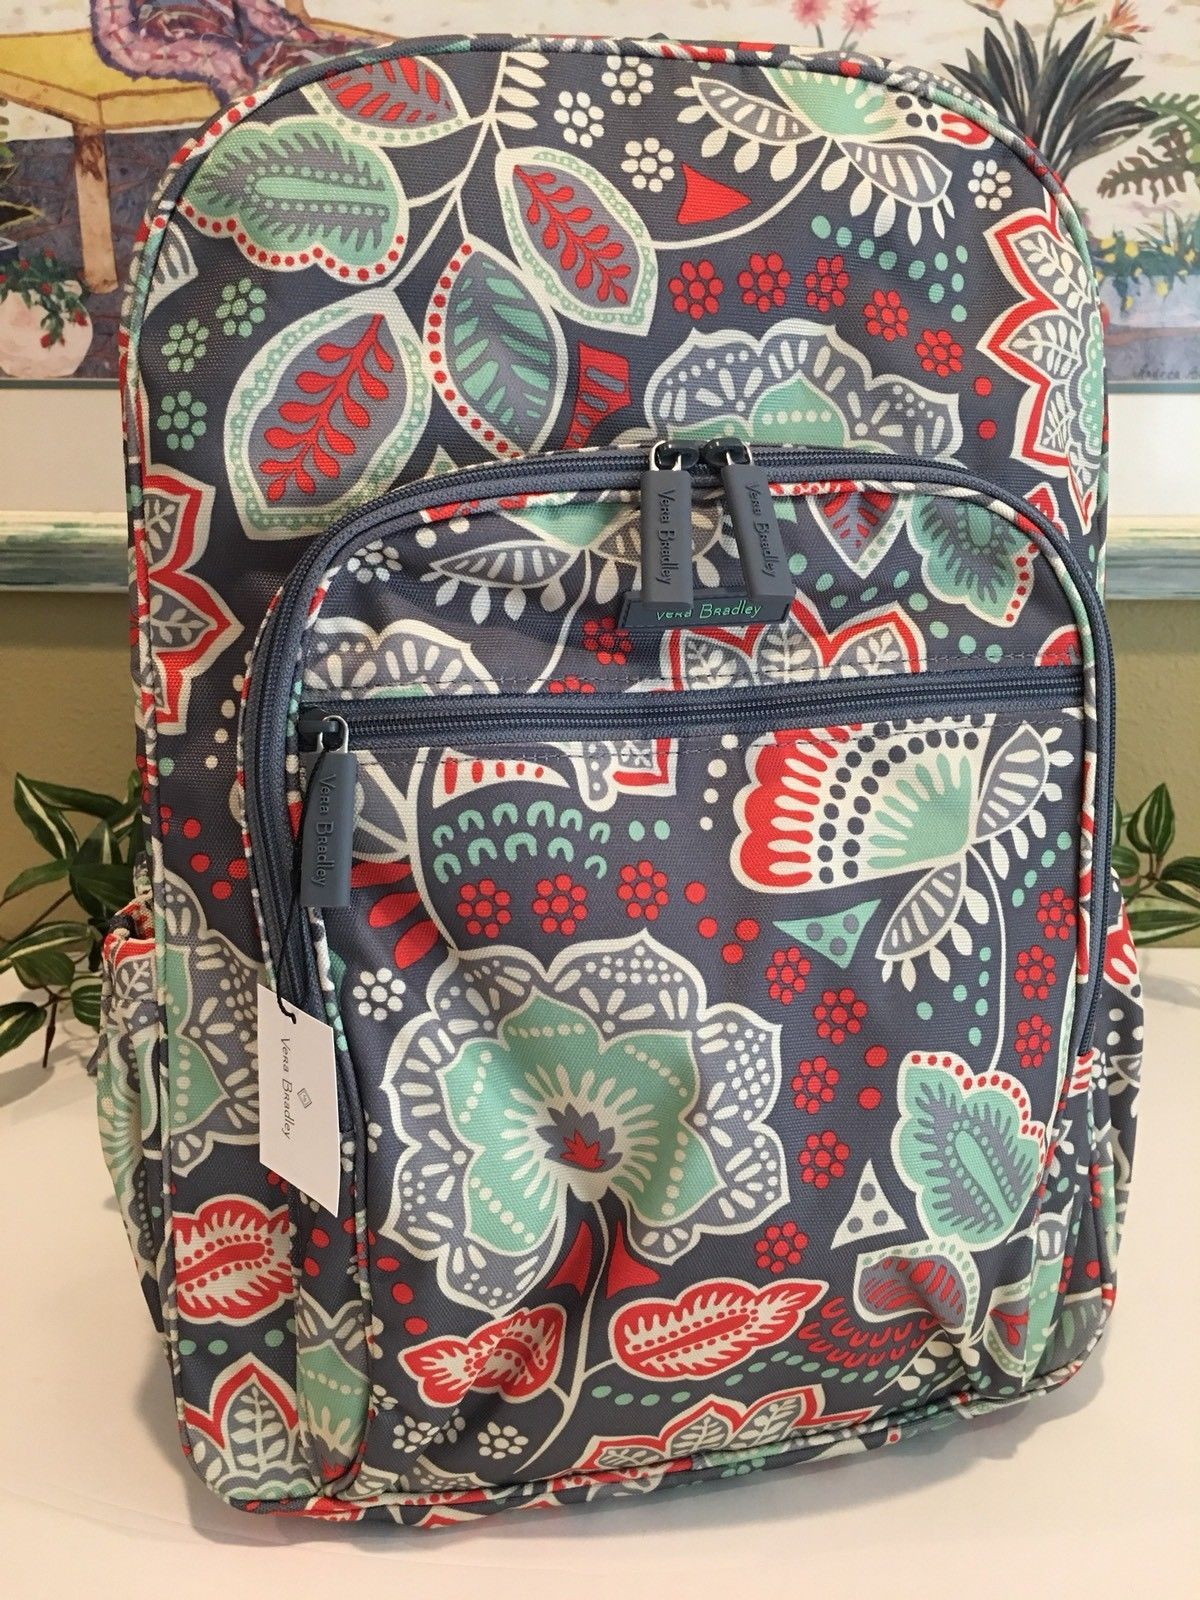 ed164dd36dde VERA BRADLEY LIGHTEN UP CAMPUS BACKPACK SCHOOL COLLEGE BOOK BAG NOMADIC  FLORAL